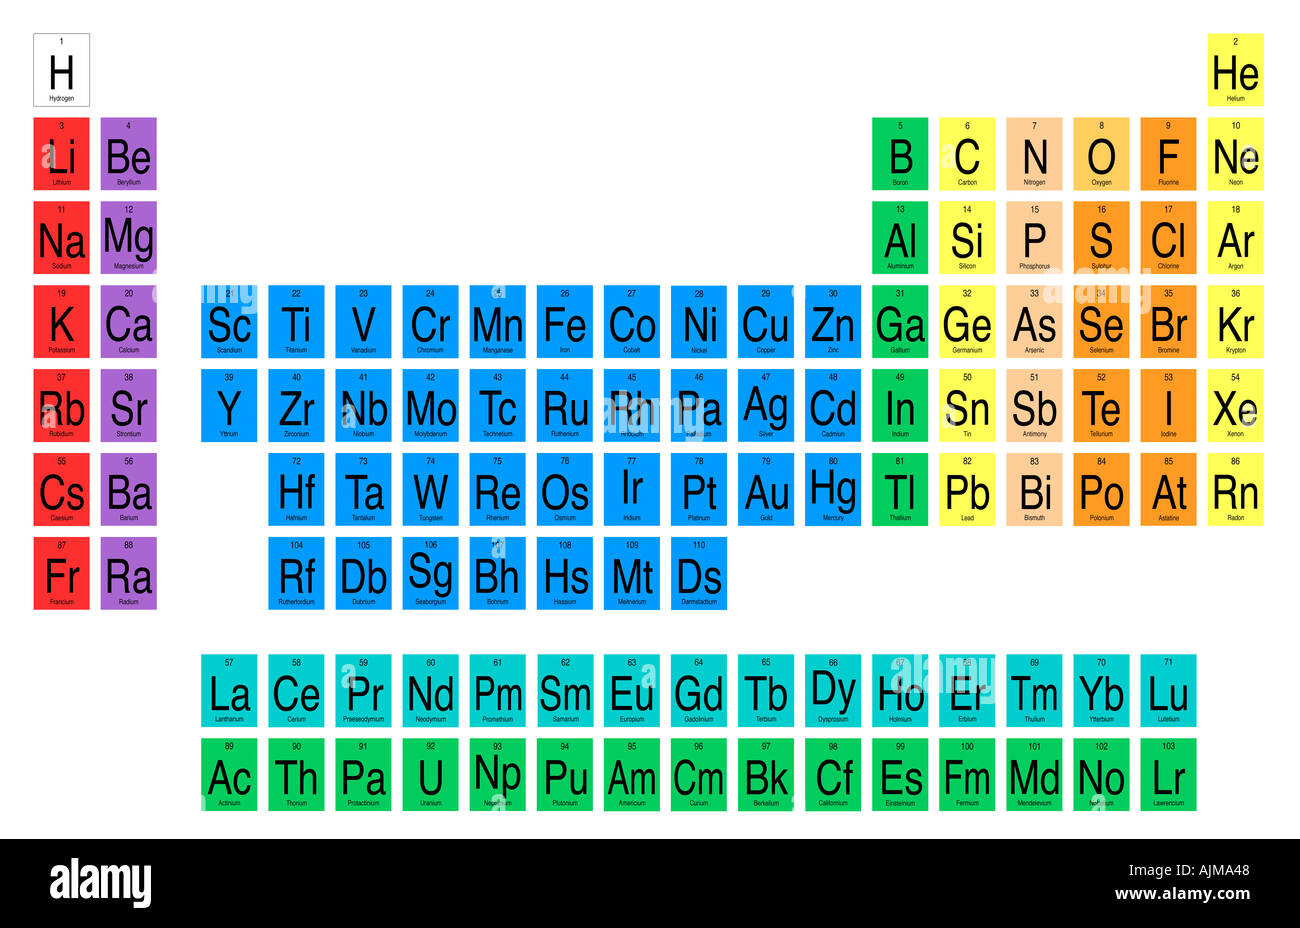 Periodic table stock photos periodic table stock images alamy periodic table stock image urtaz Image collections